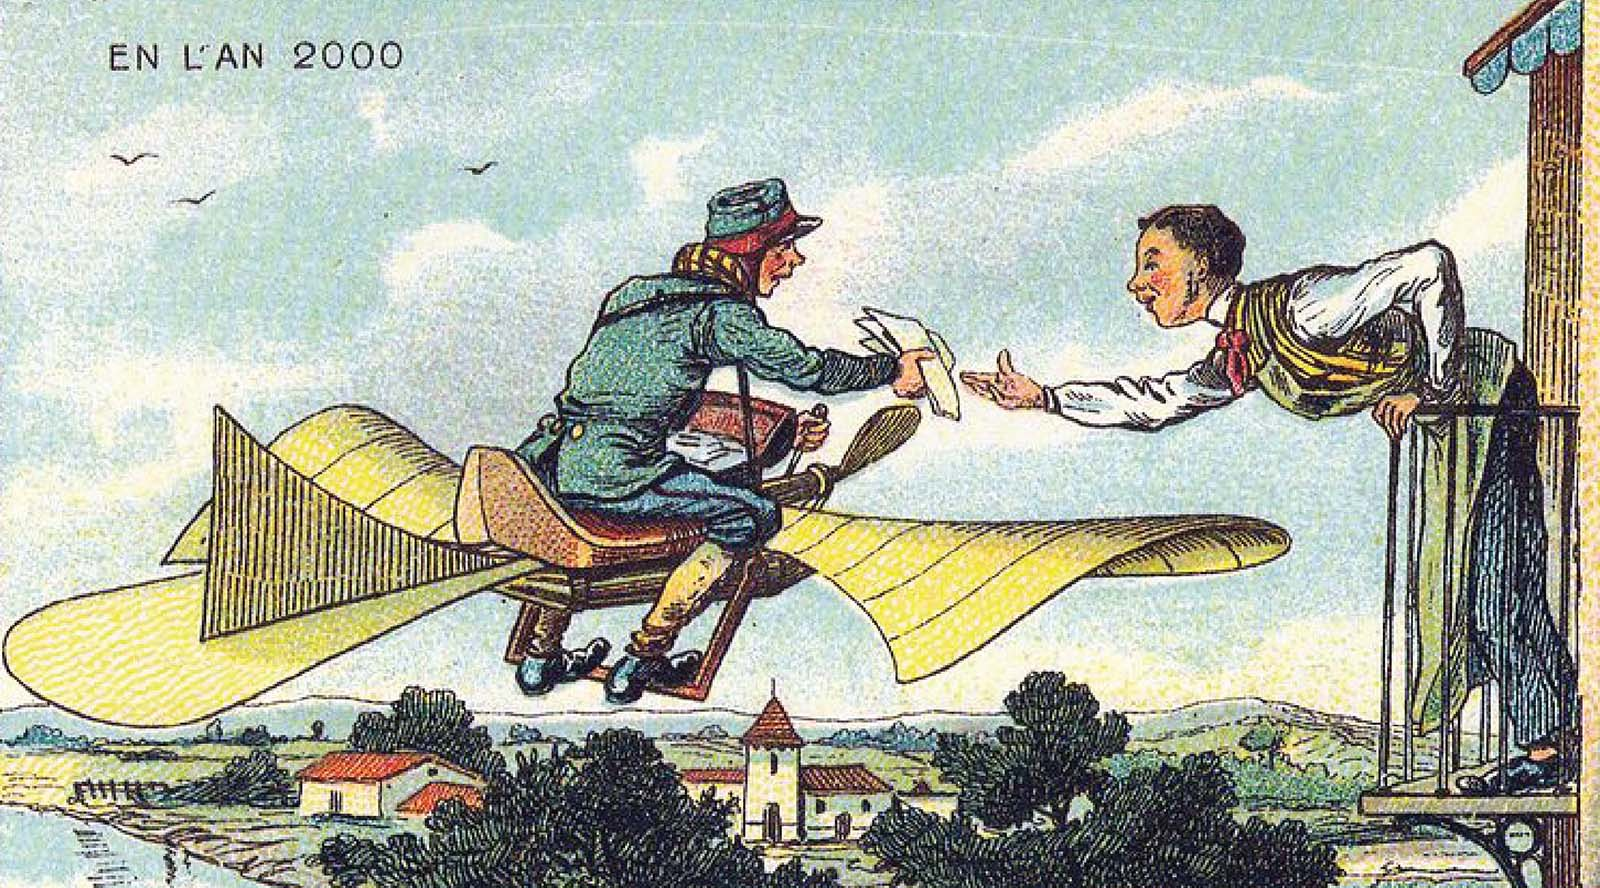 The 19th-century postcards of Jean-Marc Côté that predicted the world in the Year 2000